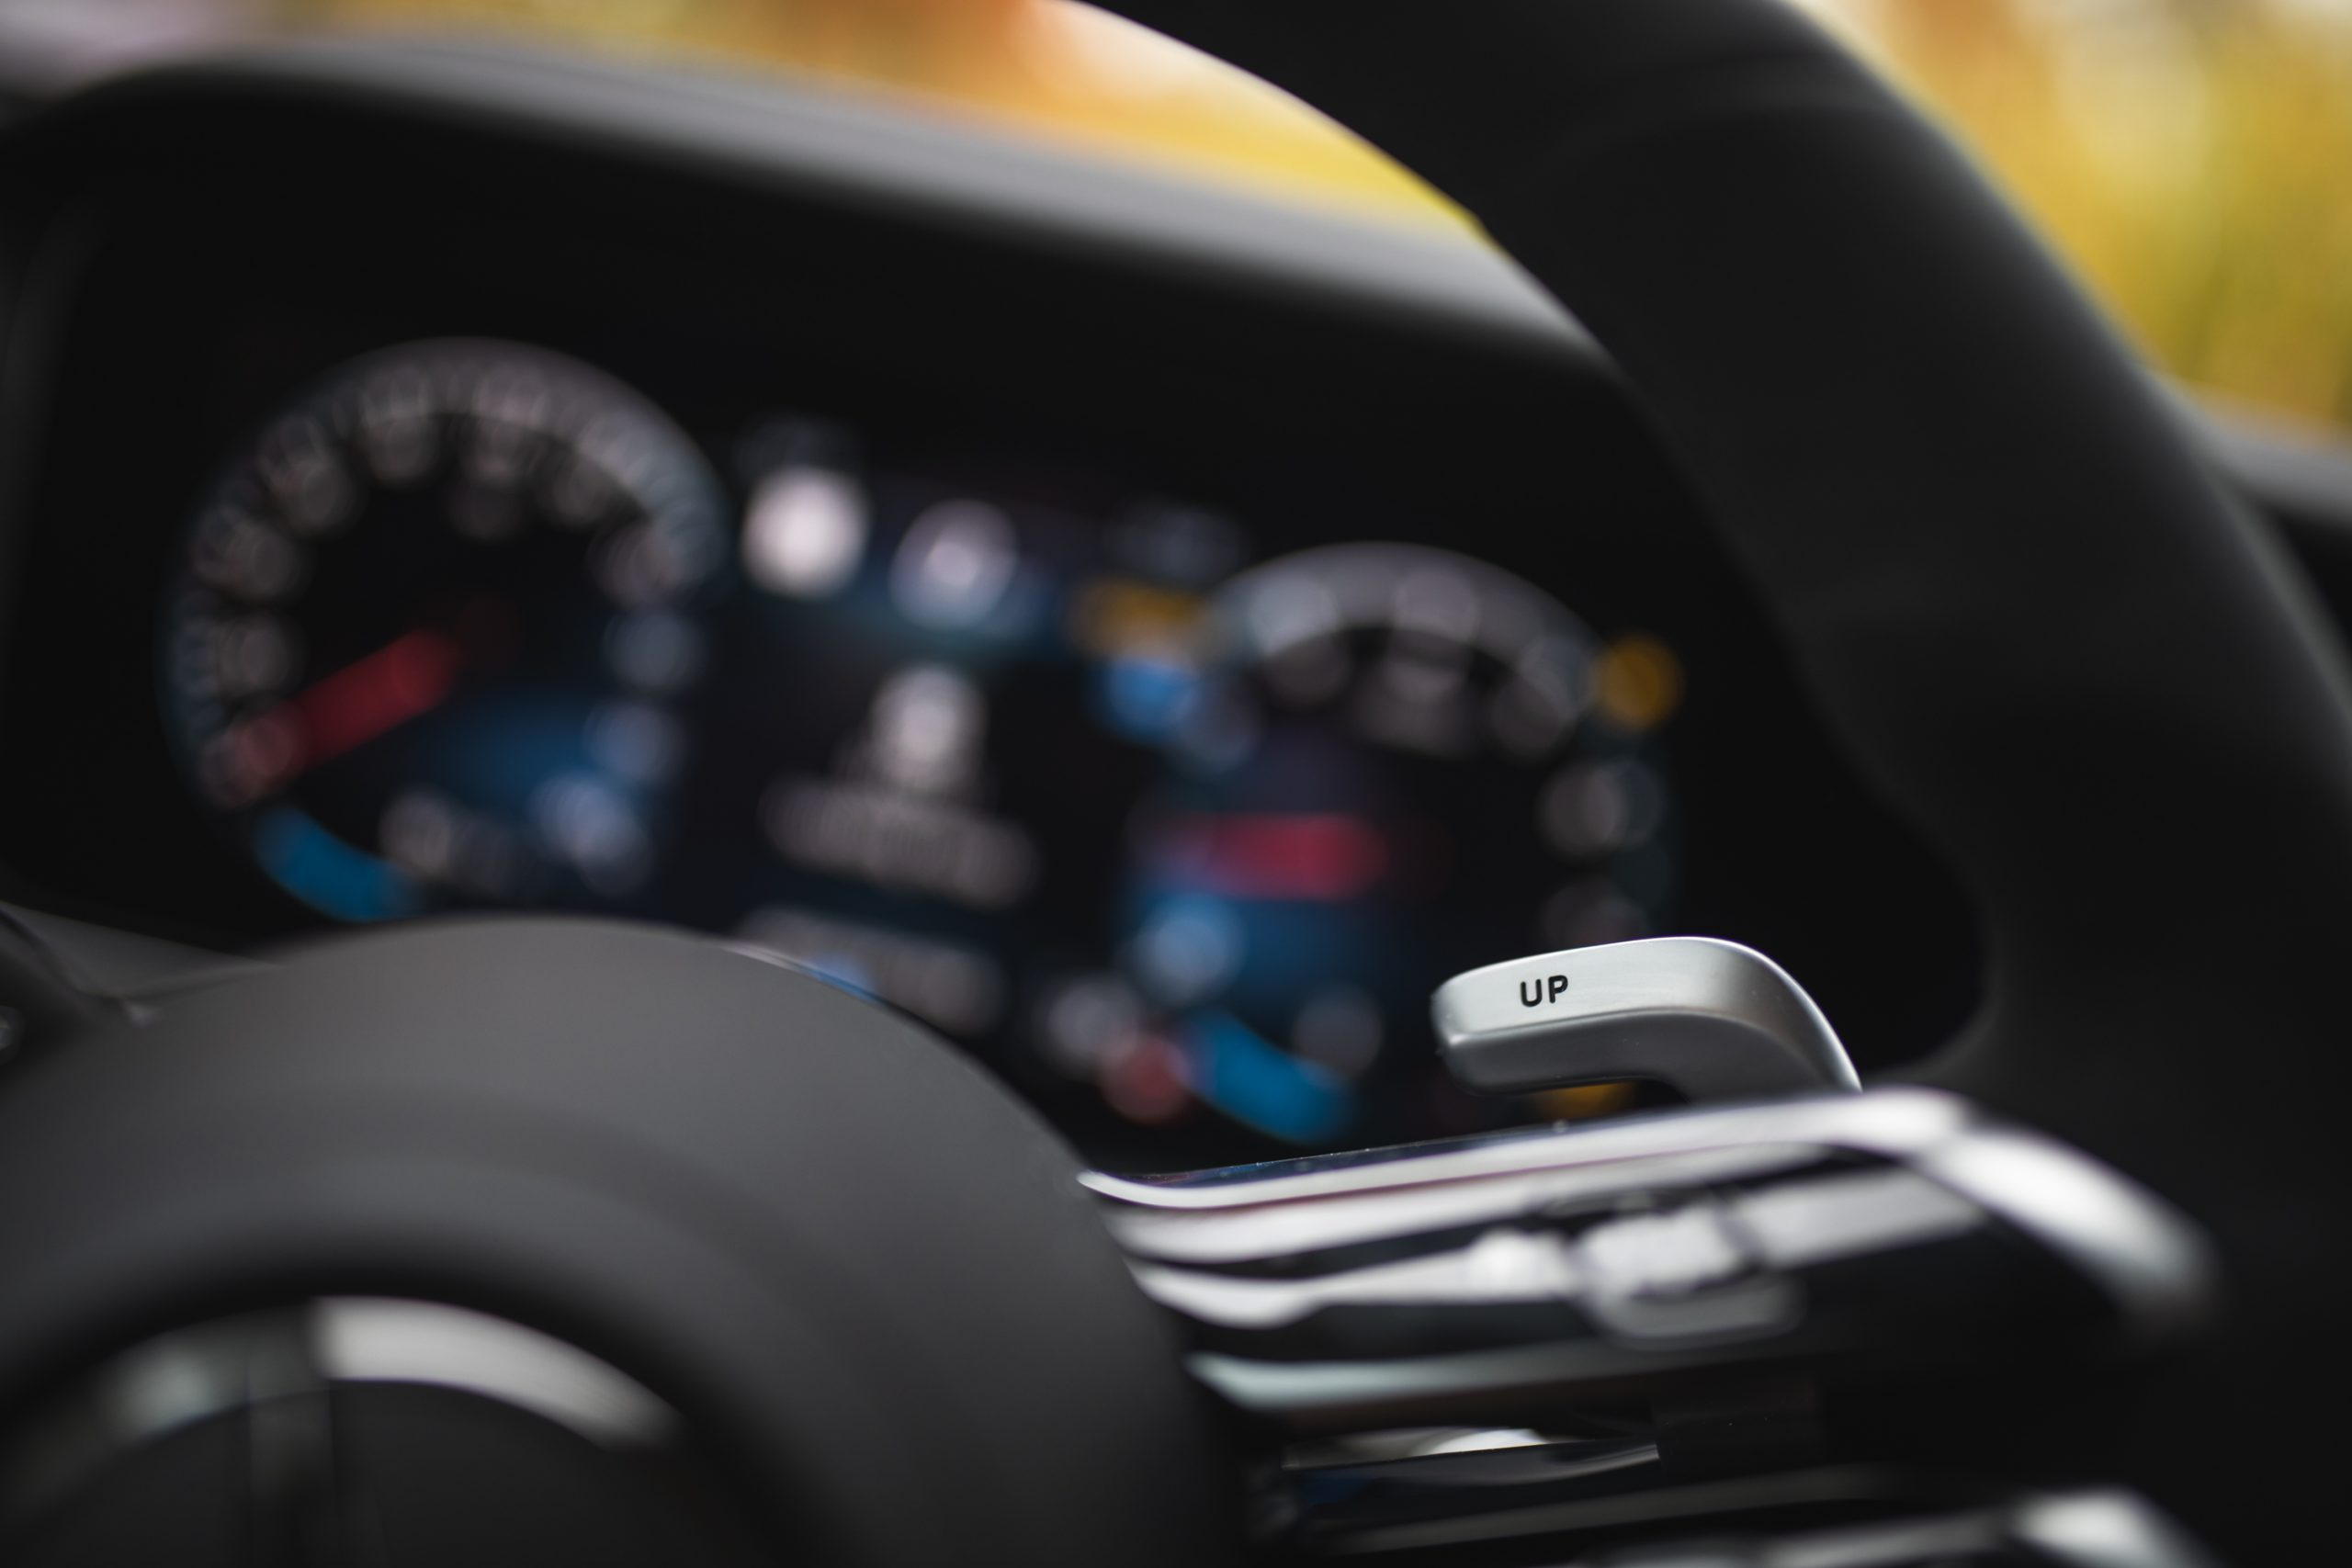 2021 Mercedes-AMG E63 S interior wheel paddle shifter detail